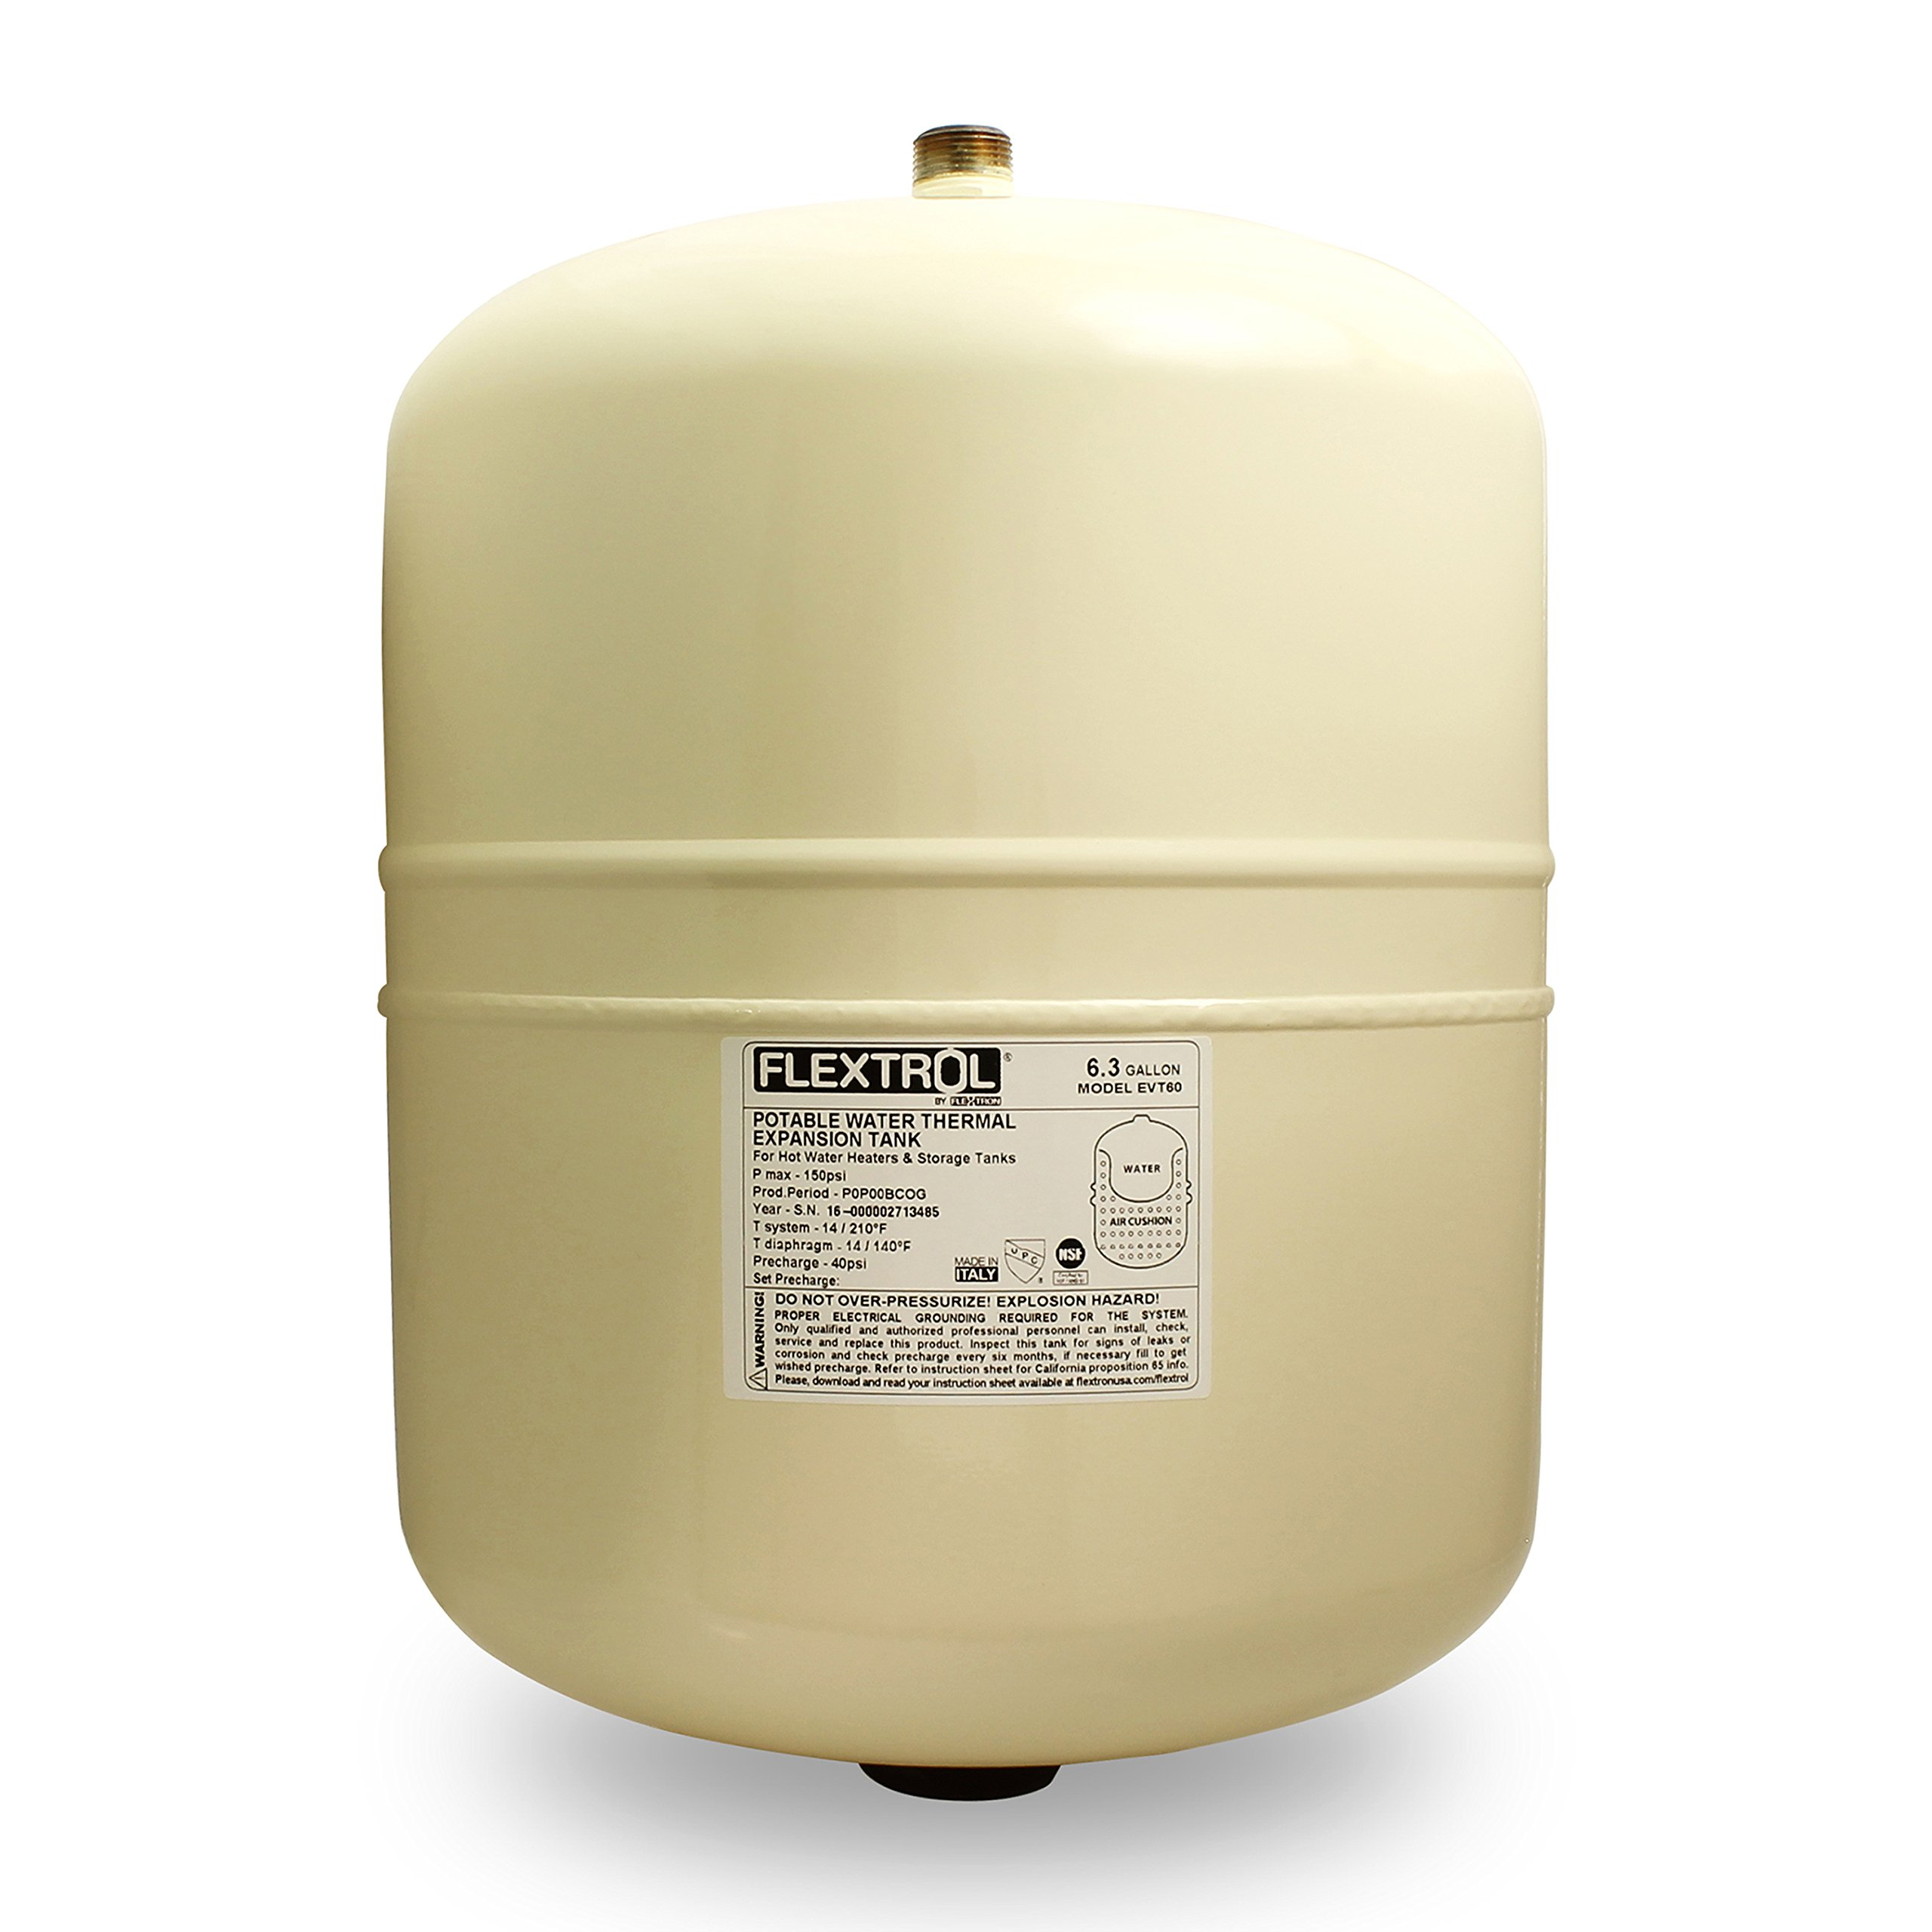 Flextrol Thermal Expansion Tanks - For Hot Water Heaters 6.3 Gallons, Carbon Steel Shell, Stainless Steel 3/4 Inch MIP Connection, Butyl Diaphragm, 150 PSI, 210 Degrees Fahrenheit, Almond Color